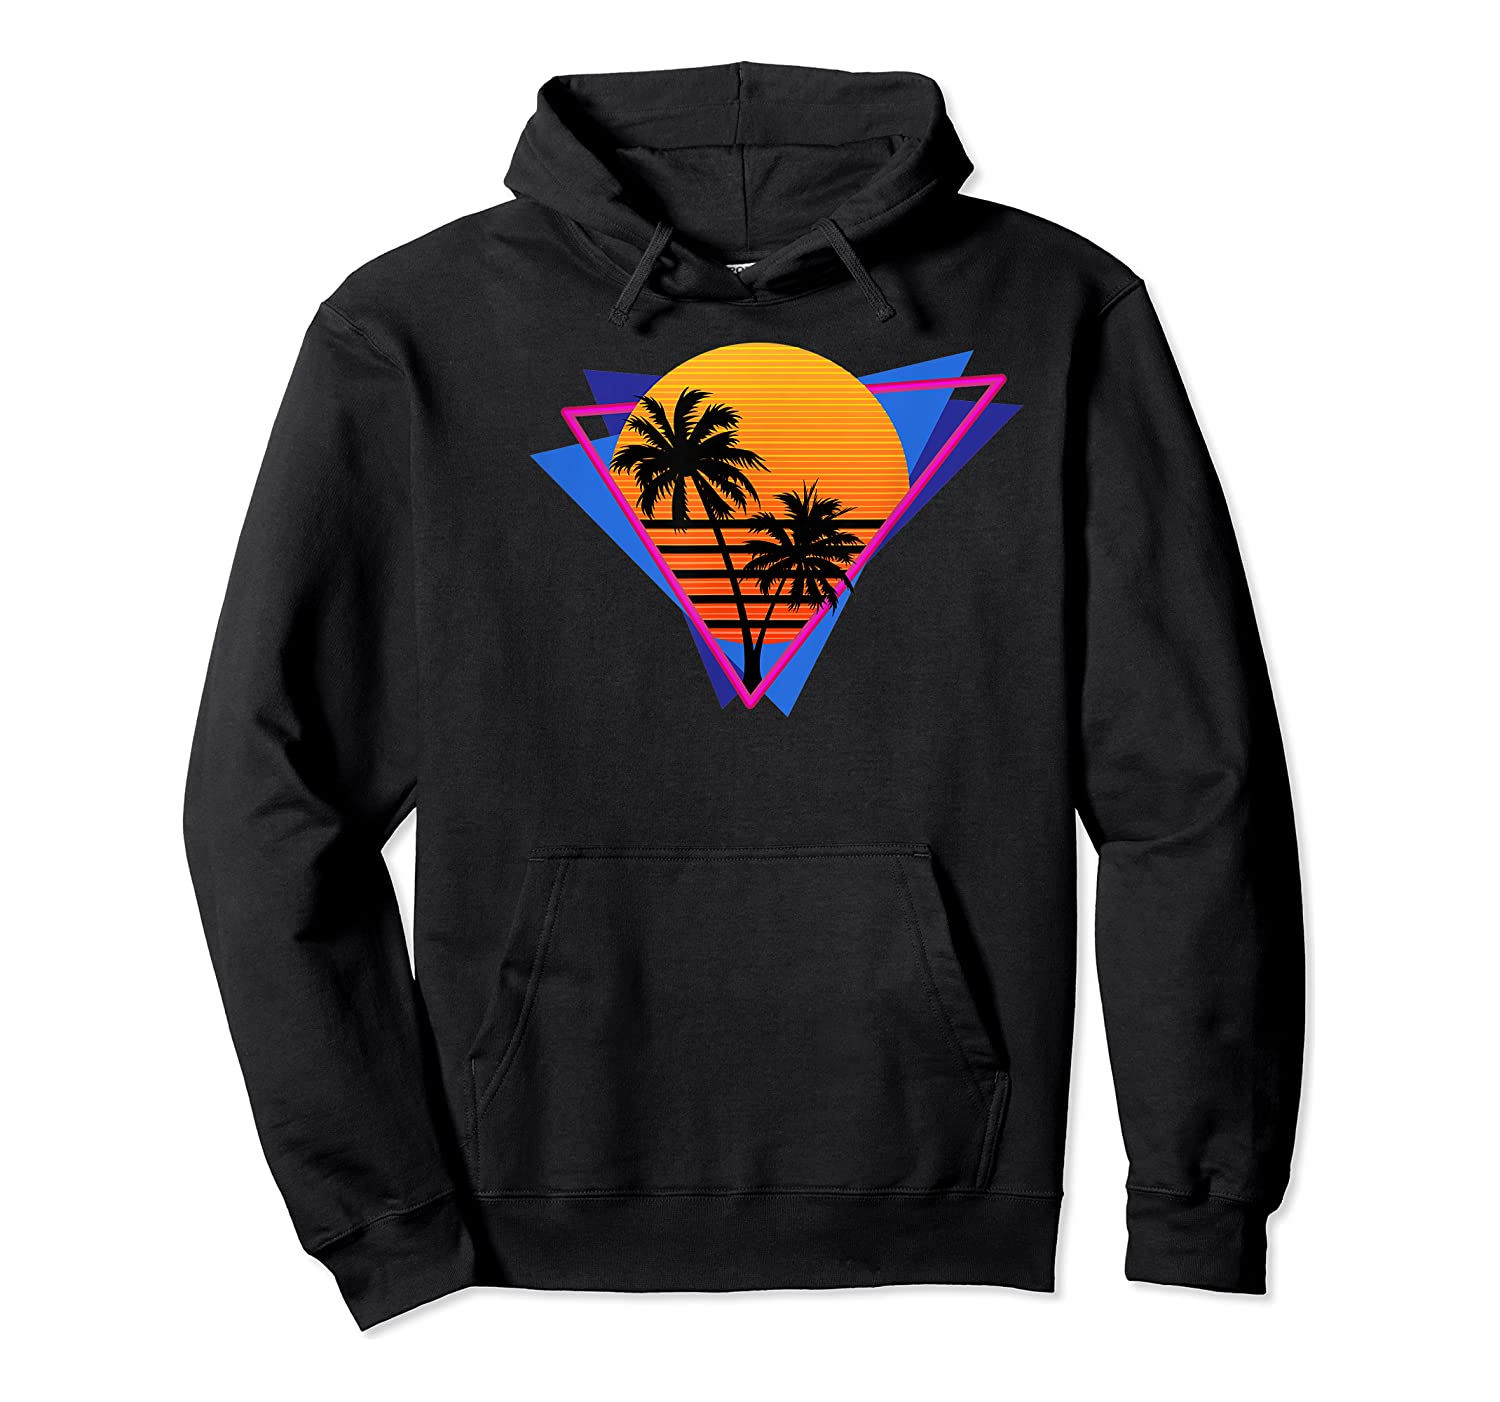 80s Style Synthwave Retrowave Aesthetic Palm Tree Sunset Shirts Unisex Pullover Hoodie